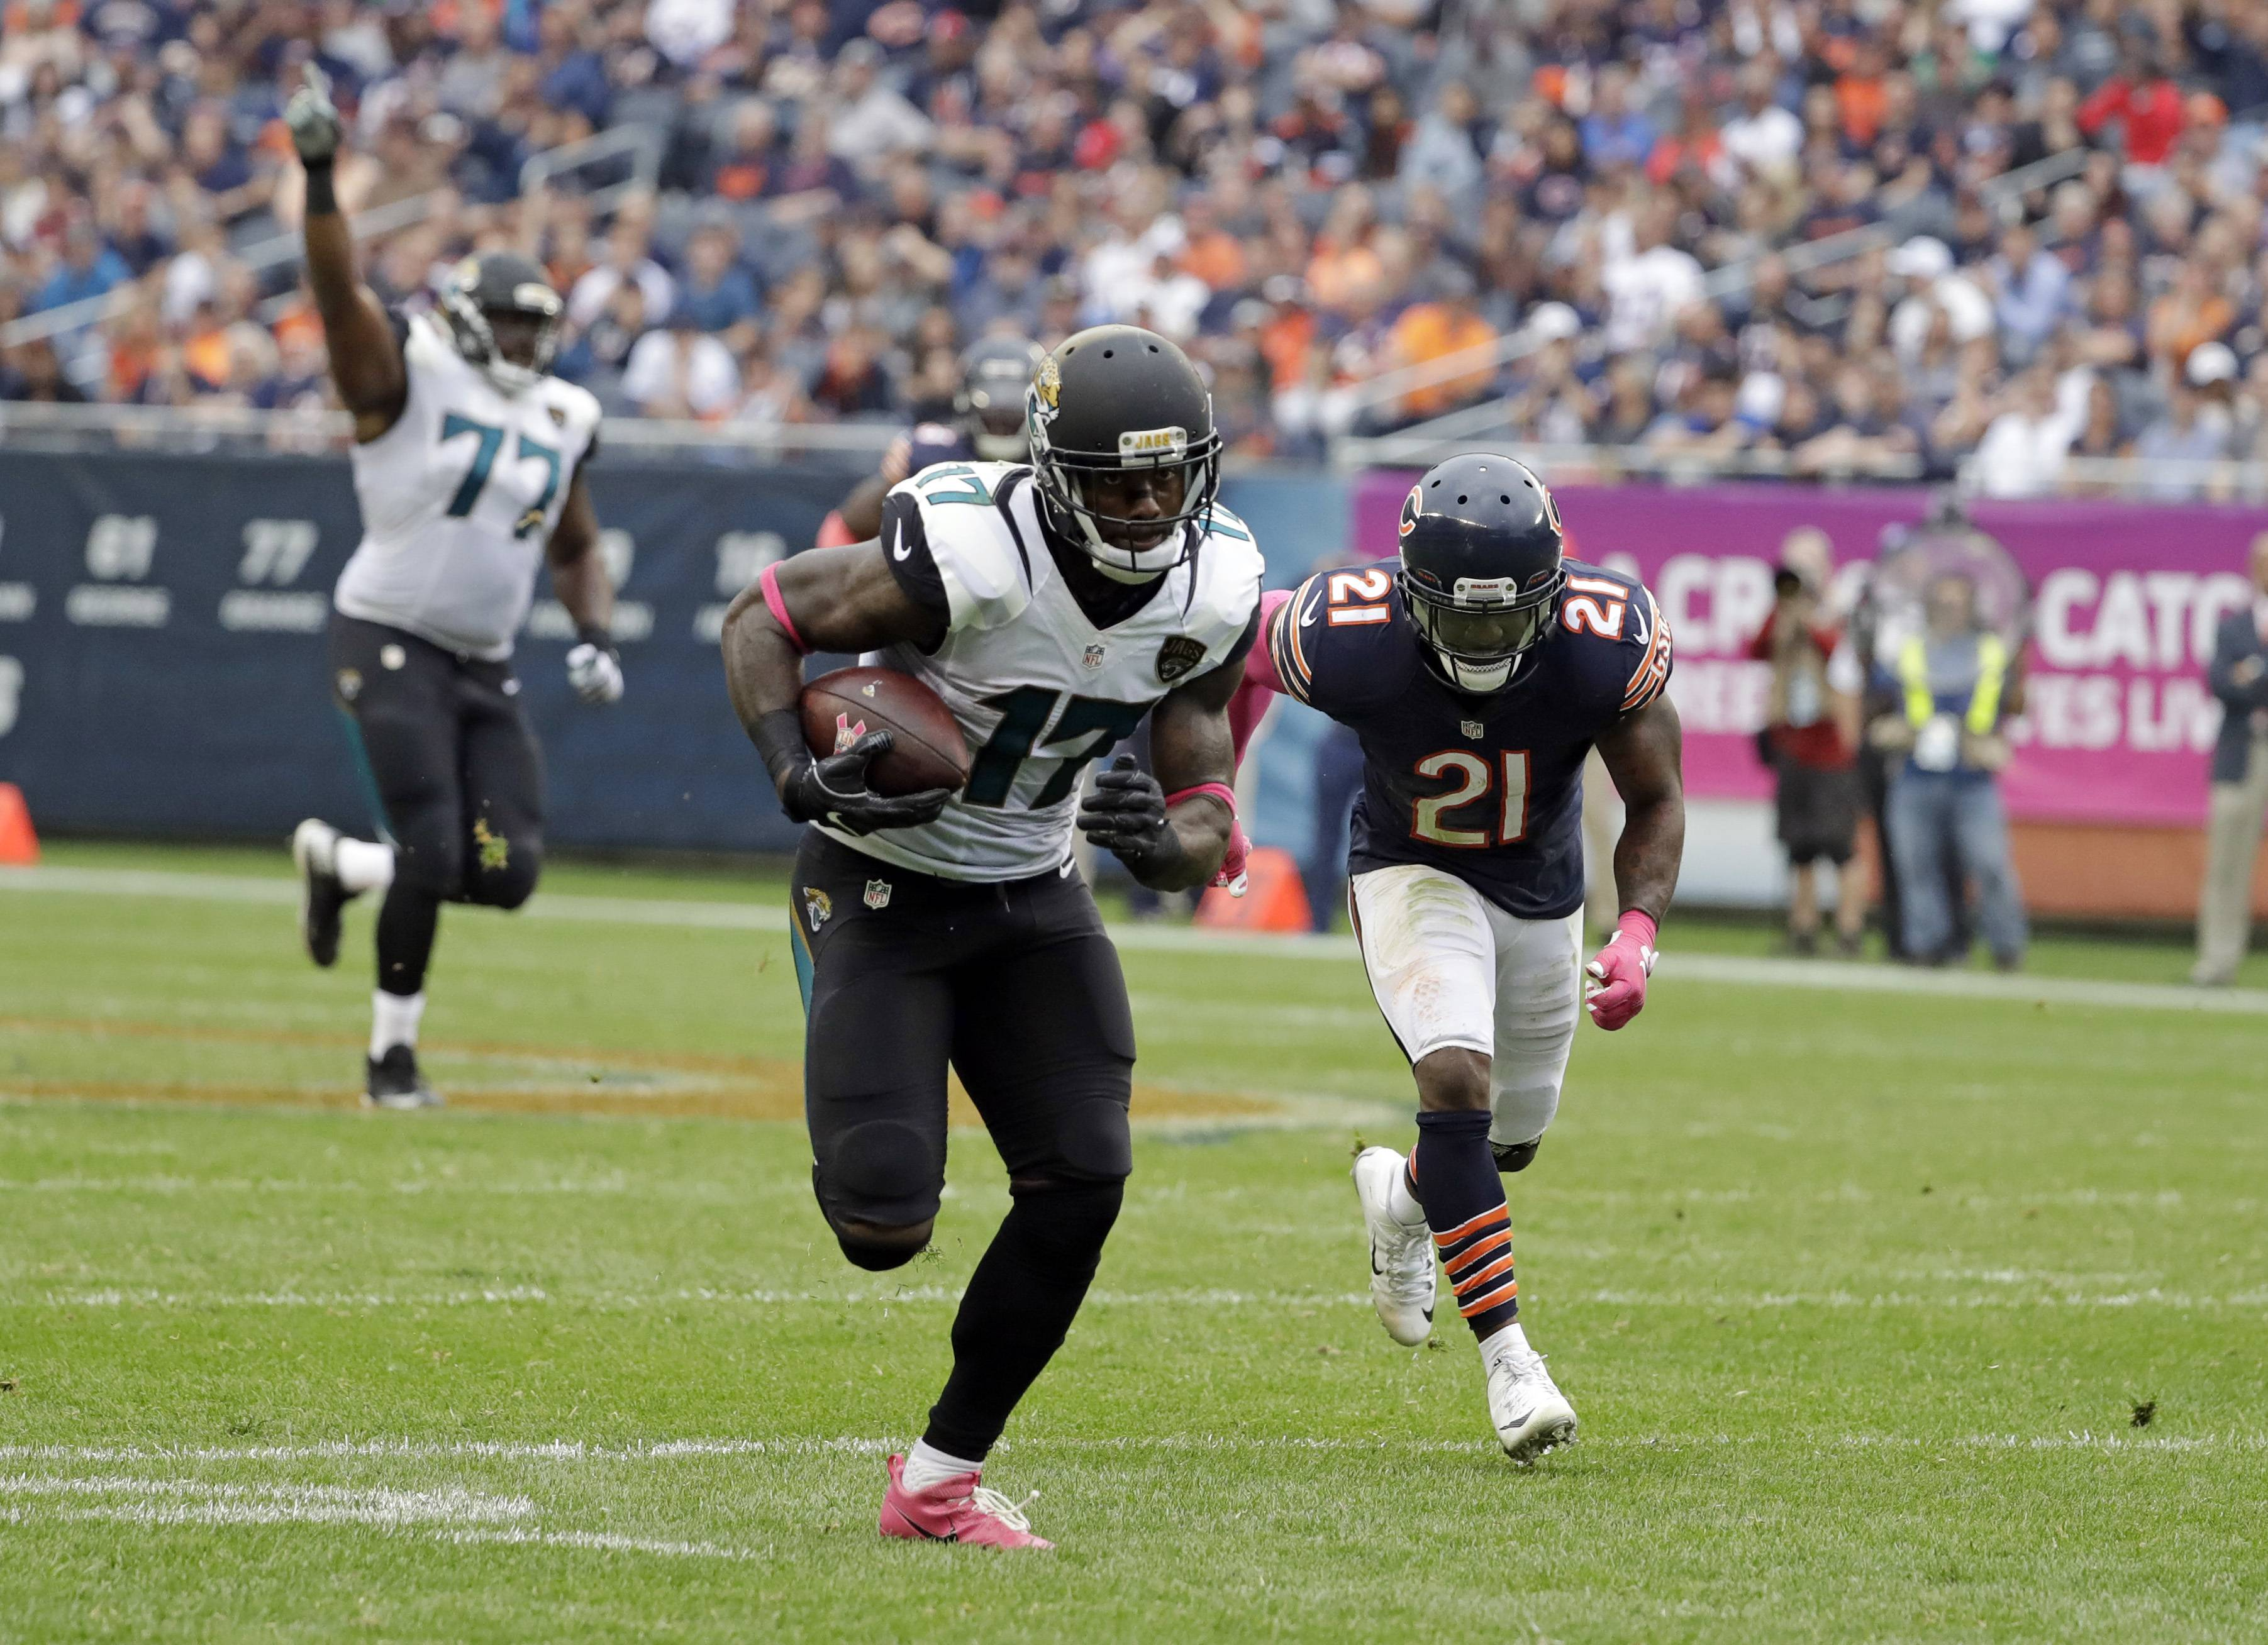 Jacksonville Jaguars wide receiver Arrelious Benn (17) heads to the end zone for a touchdown in from of Chicago Bears cornerback Tracy Porter (21) during the second half of an NFL football game in Chicago, Sunday, Oct. 16, 2016.